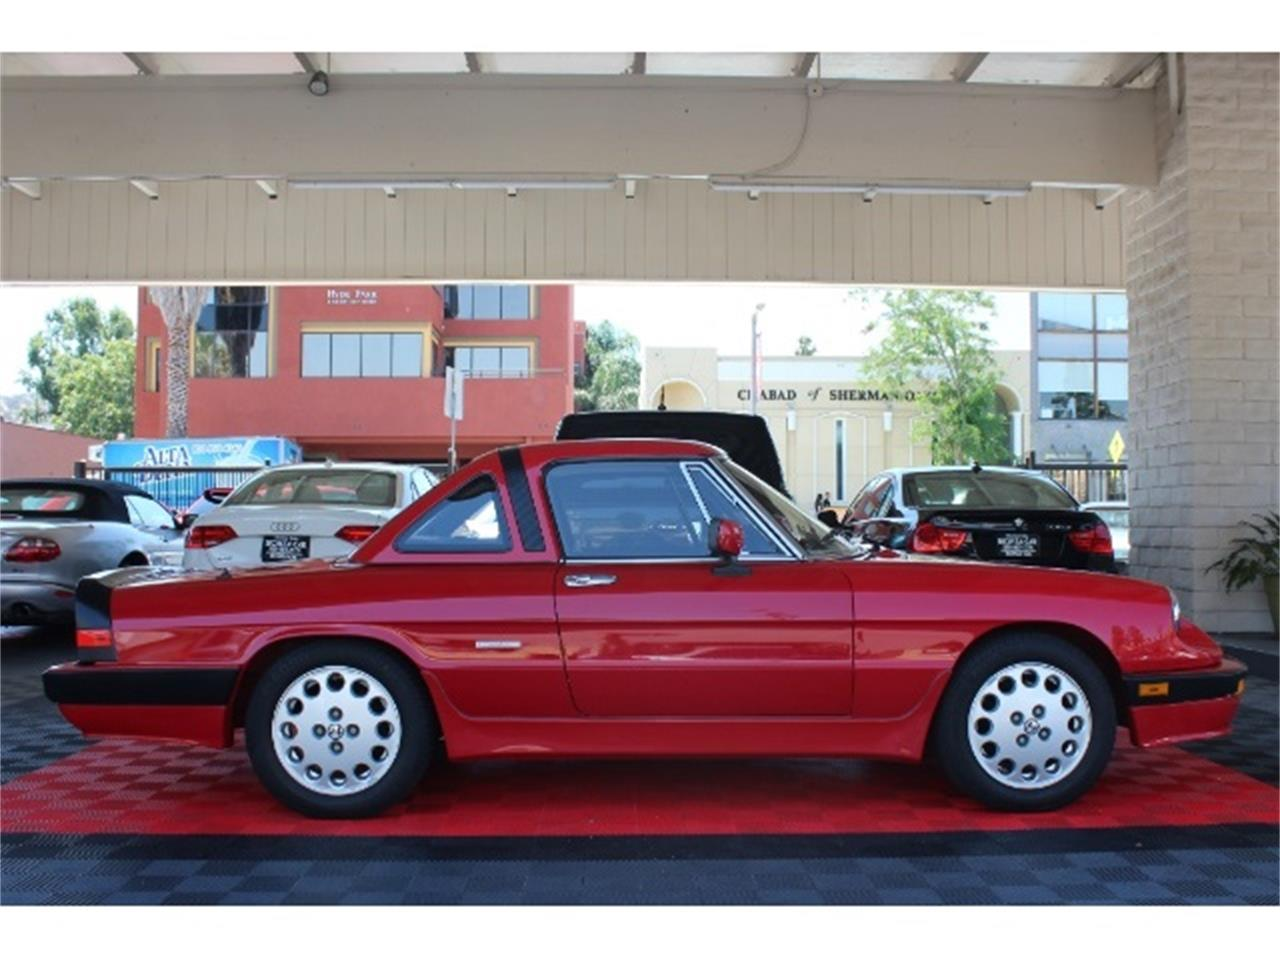 Large Picture of 1988 Spider Quadrifoglio Offered by Monza Car - PFQ8